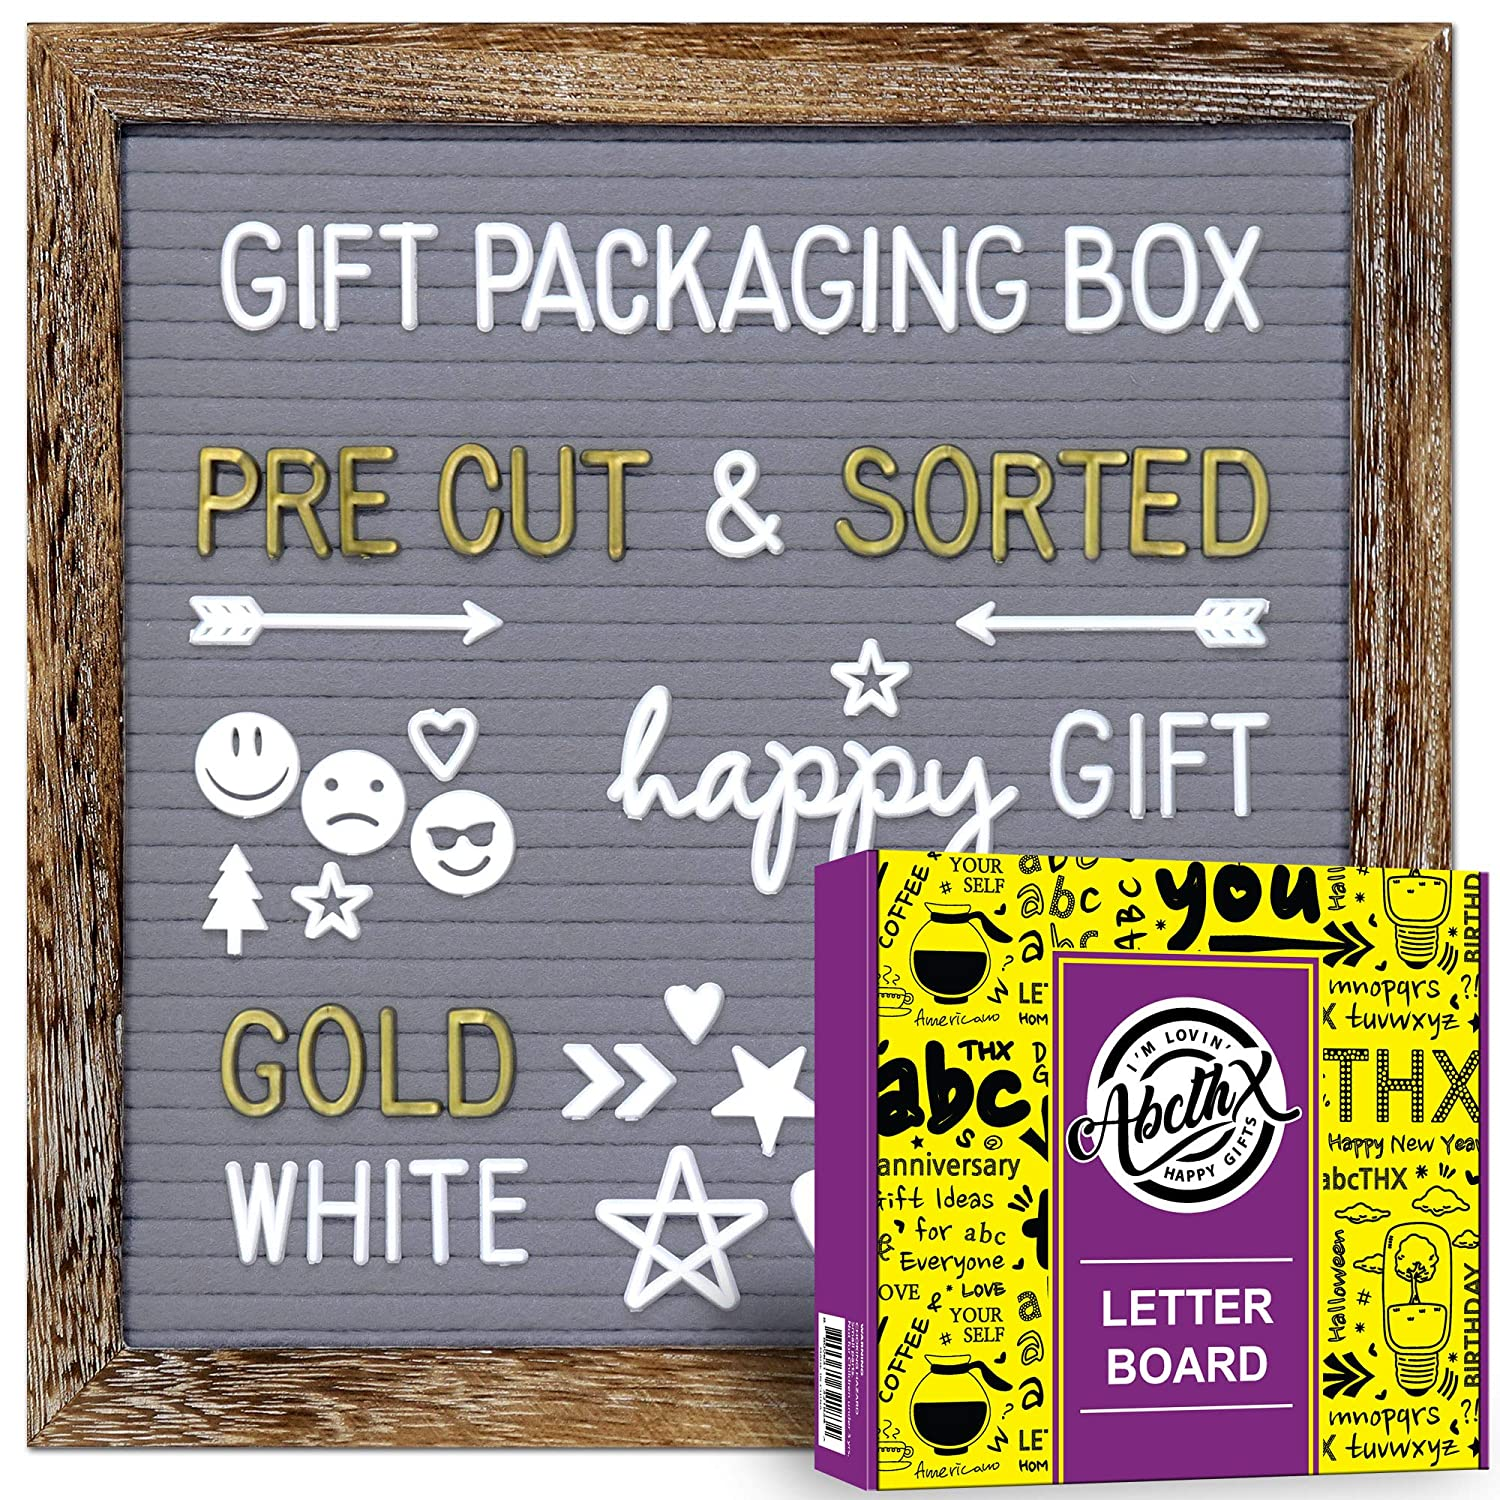 B07W1FLXN1 Rustic Wood Frame Gray Felt Letter Board 10x10 inches with Letters| Pre Cut & Sorted | Gold & White Characters, Months & Days Cursive Word, Symbols & Emojis | Gift Box+ Stand+Sorting Tray +Wall Mount 91jg7oRaP7L